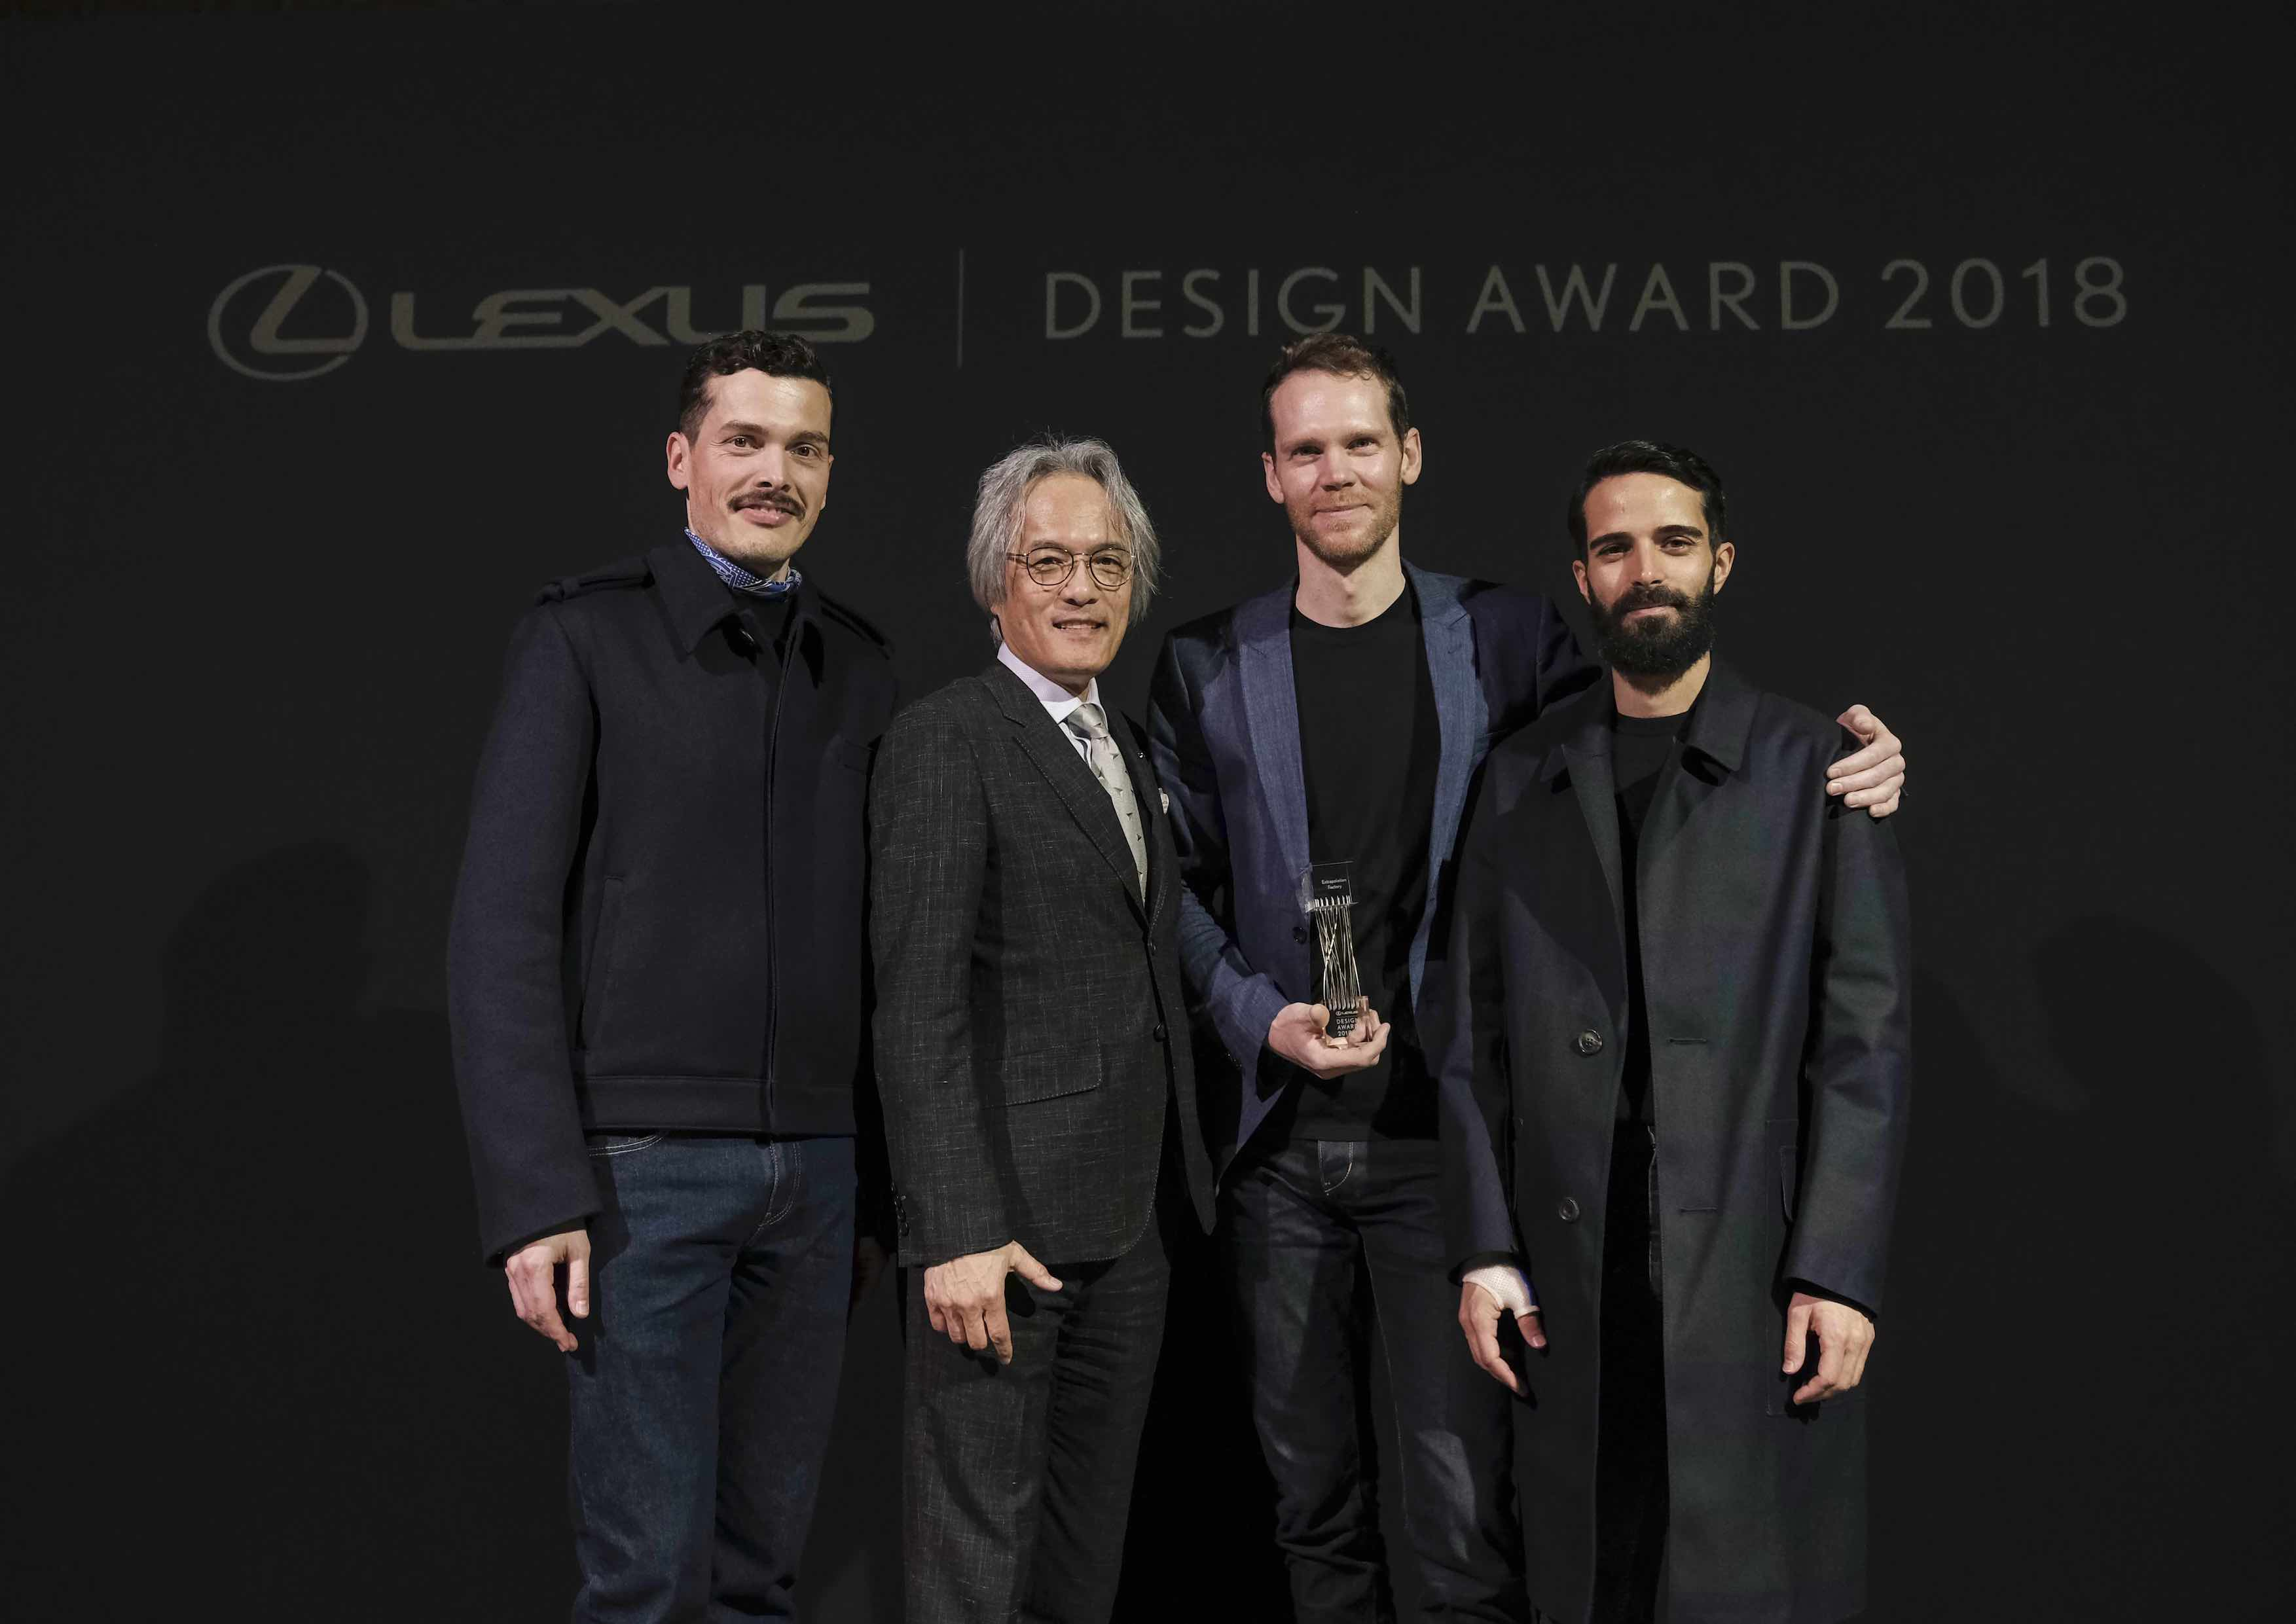 Lexus Design Award 2018 Grand Prix Winner Announced at Amazing 'Limitless Co-Existence' Exhibition in Milan